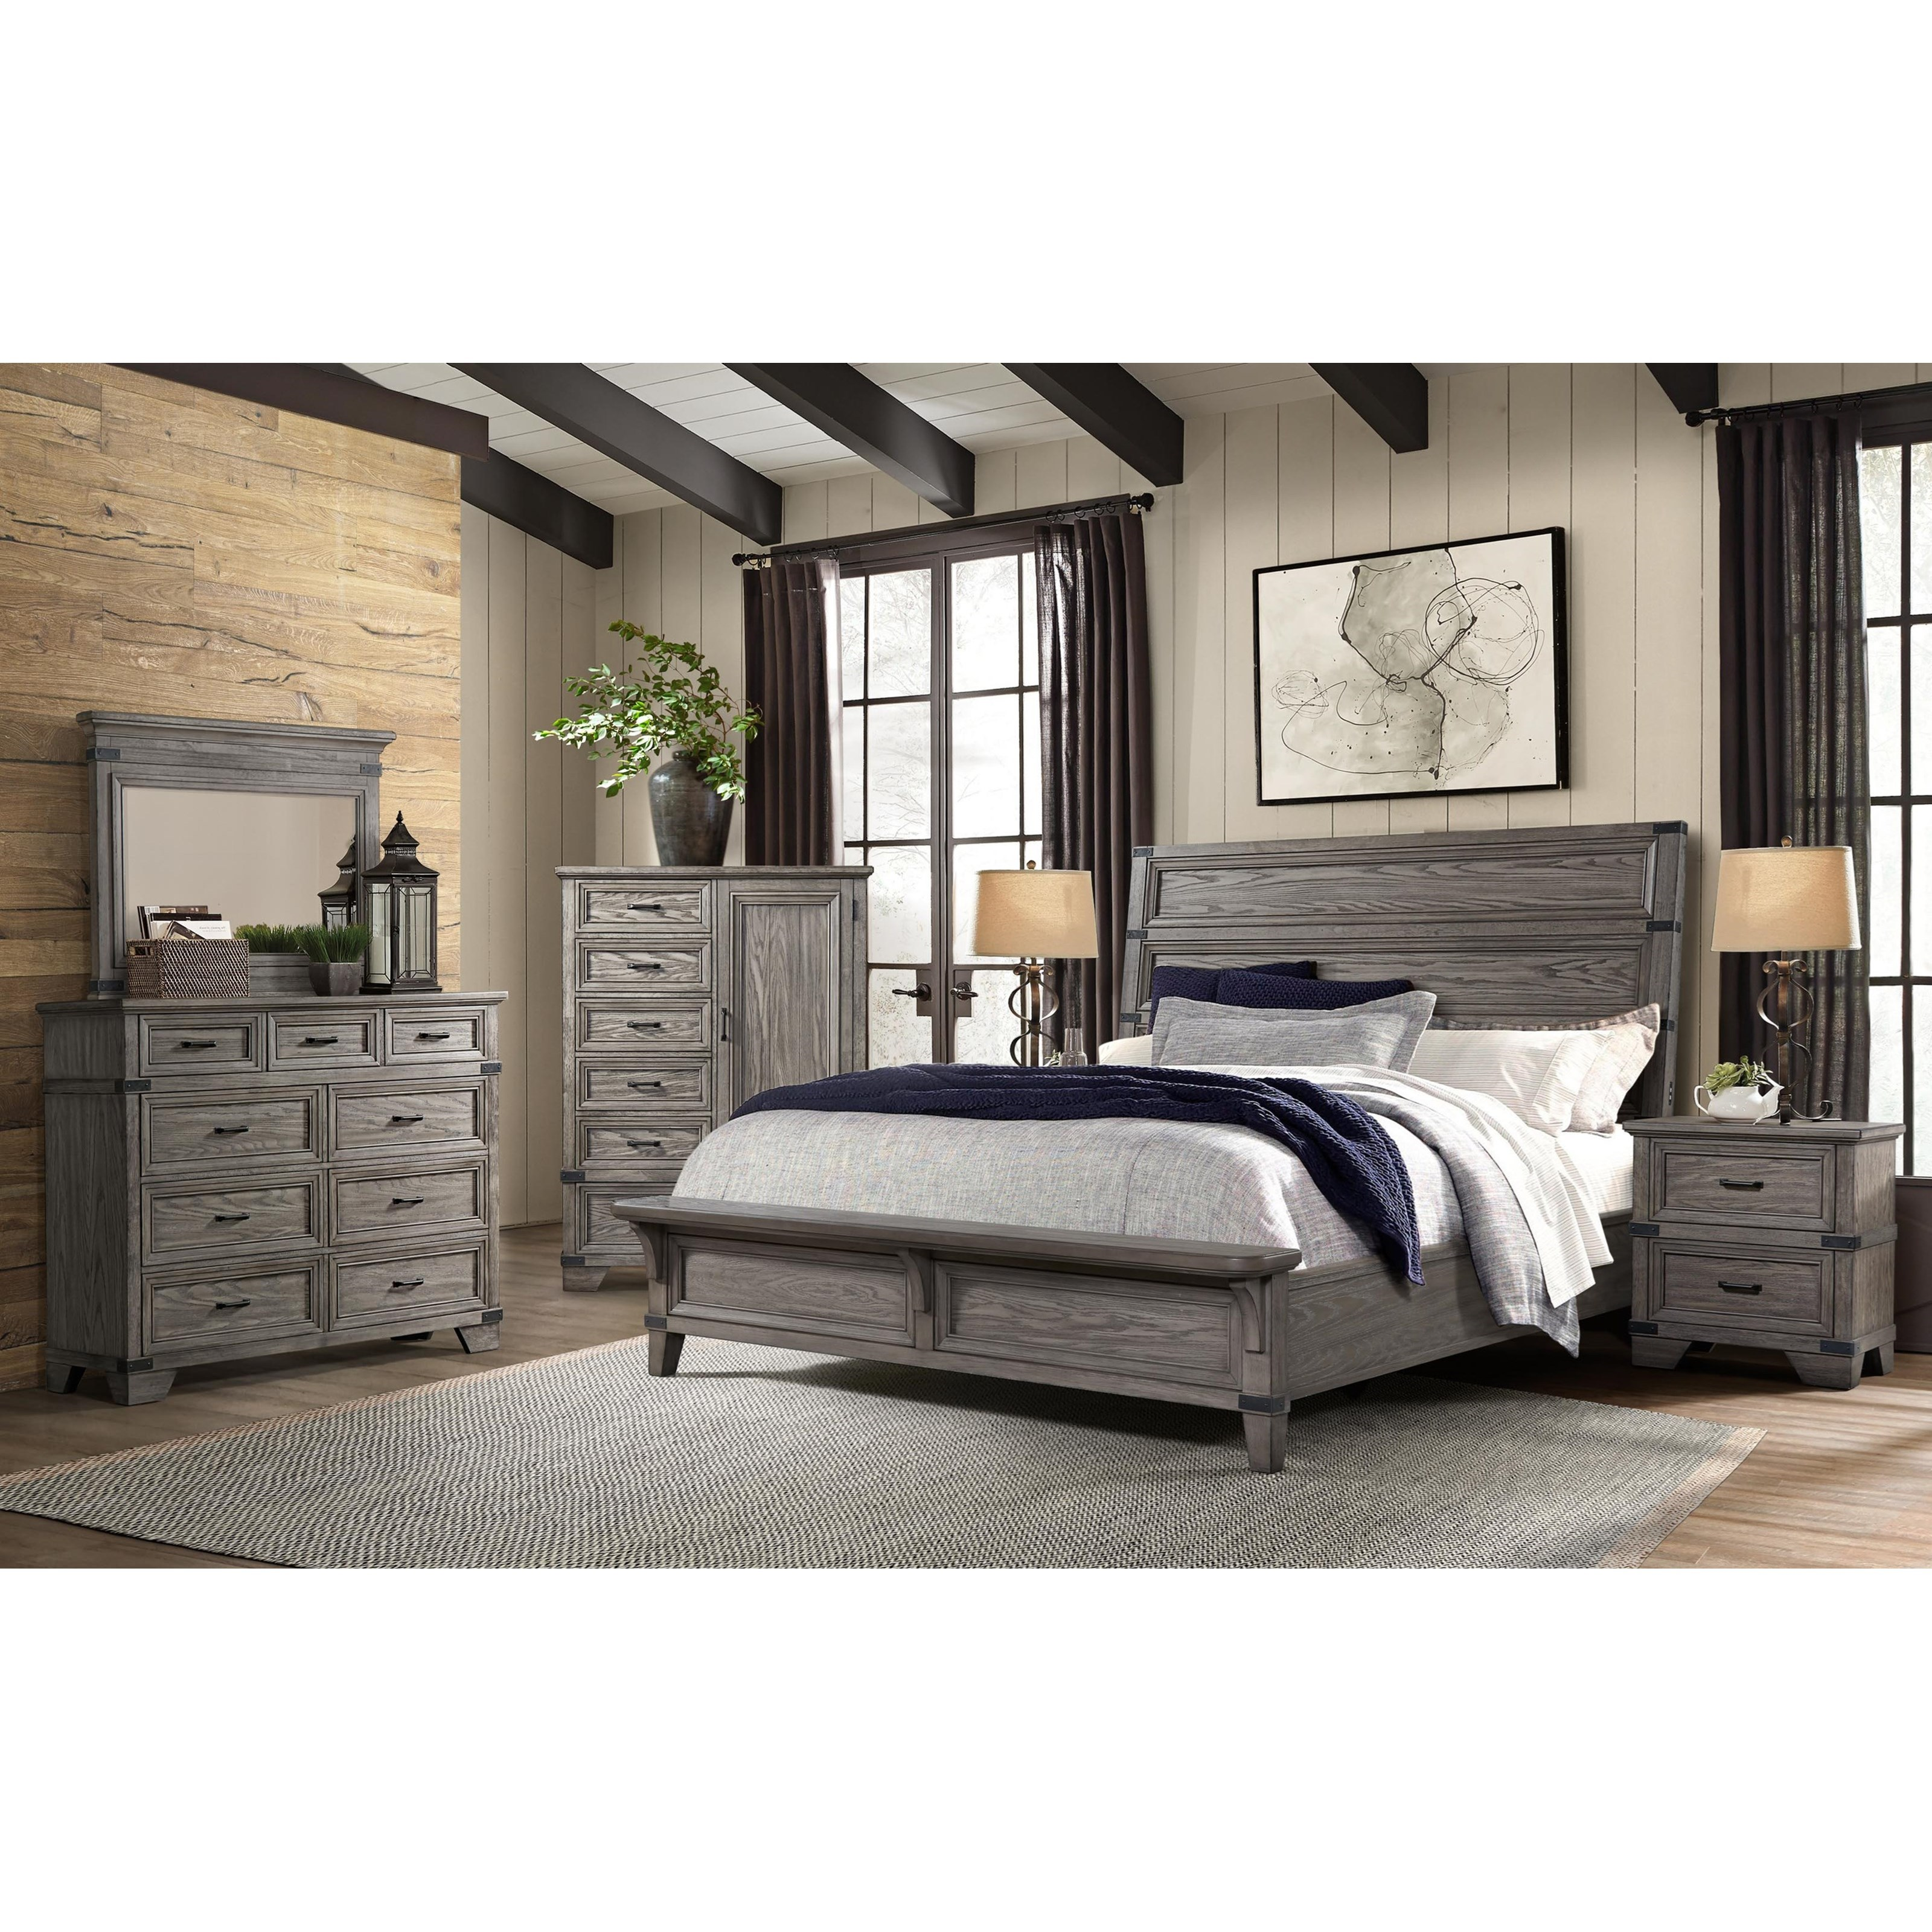 Forge Queen Bedroom Group by Sussex Bay at Johnny Janosik